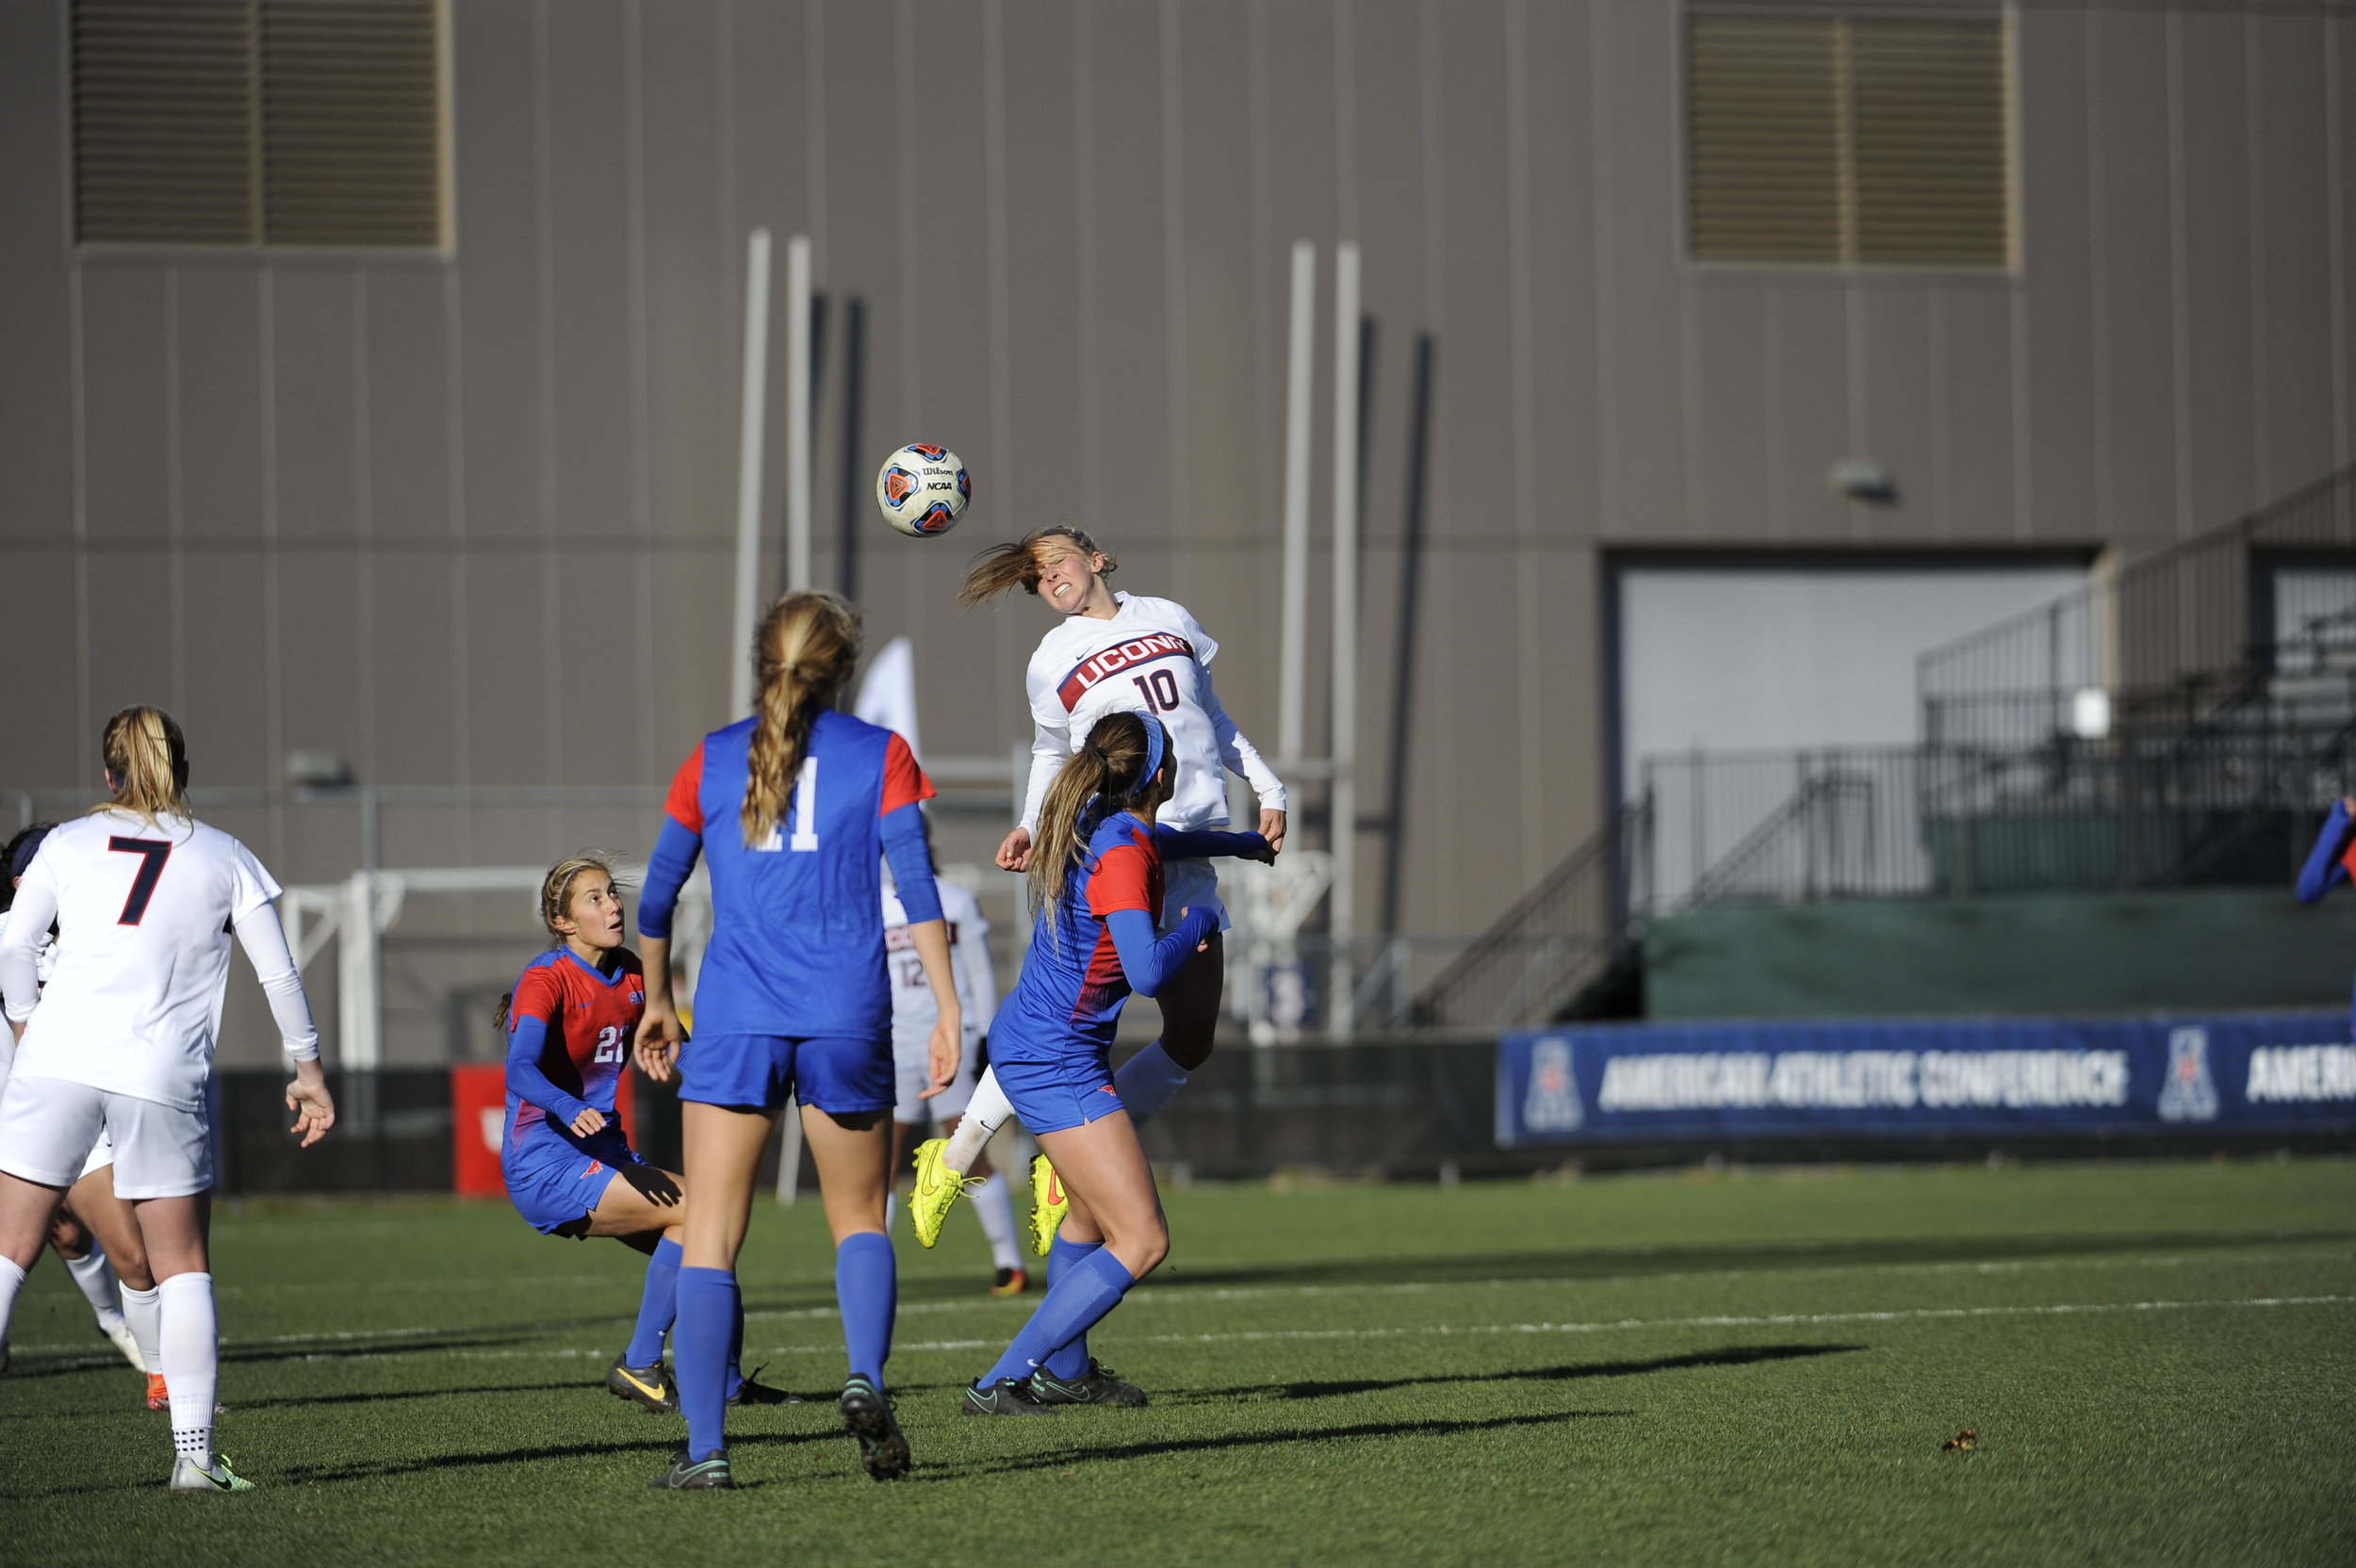 Redshirt freshman defender Annika Schmidt heads a ball over SMU players during a 1-0 win in the conference finals on Sunday, Nov. 6 at Joseph J. Morrone Stadium. Schmidt made her first start of the tournament, replacing Kristen Vinciguerra, who was ineigible to play after receiving a red card int he semifinals. (Jason Jiang/The Daily Campus)